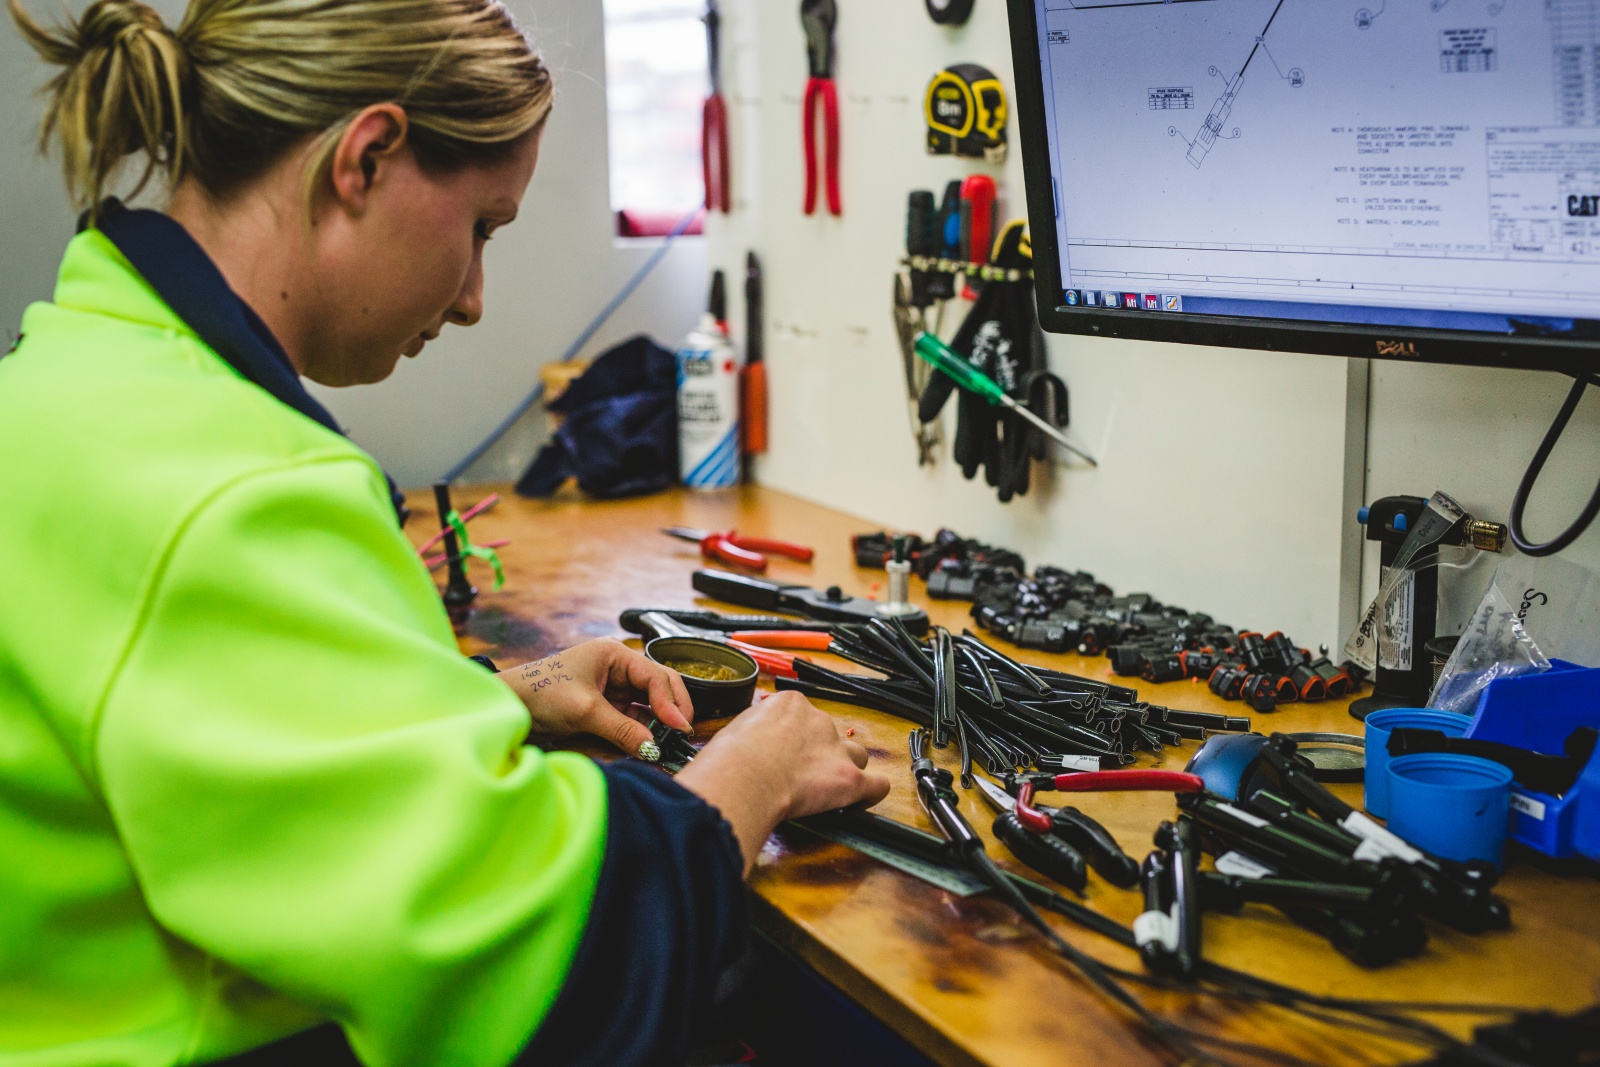 Stable, skilled and competitive workforce photo